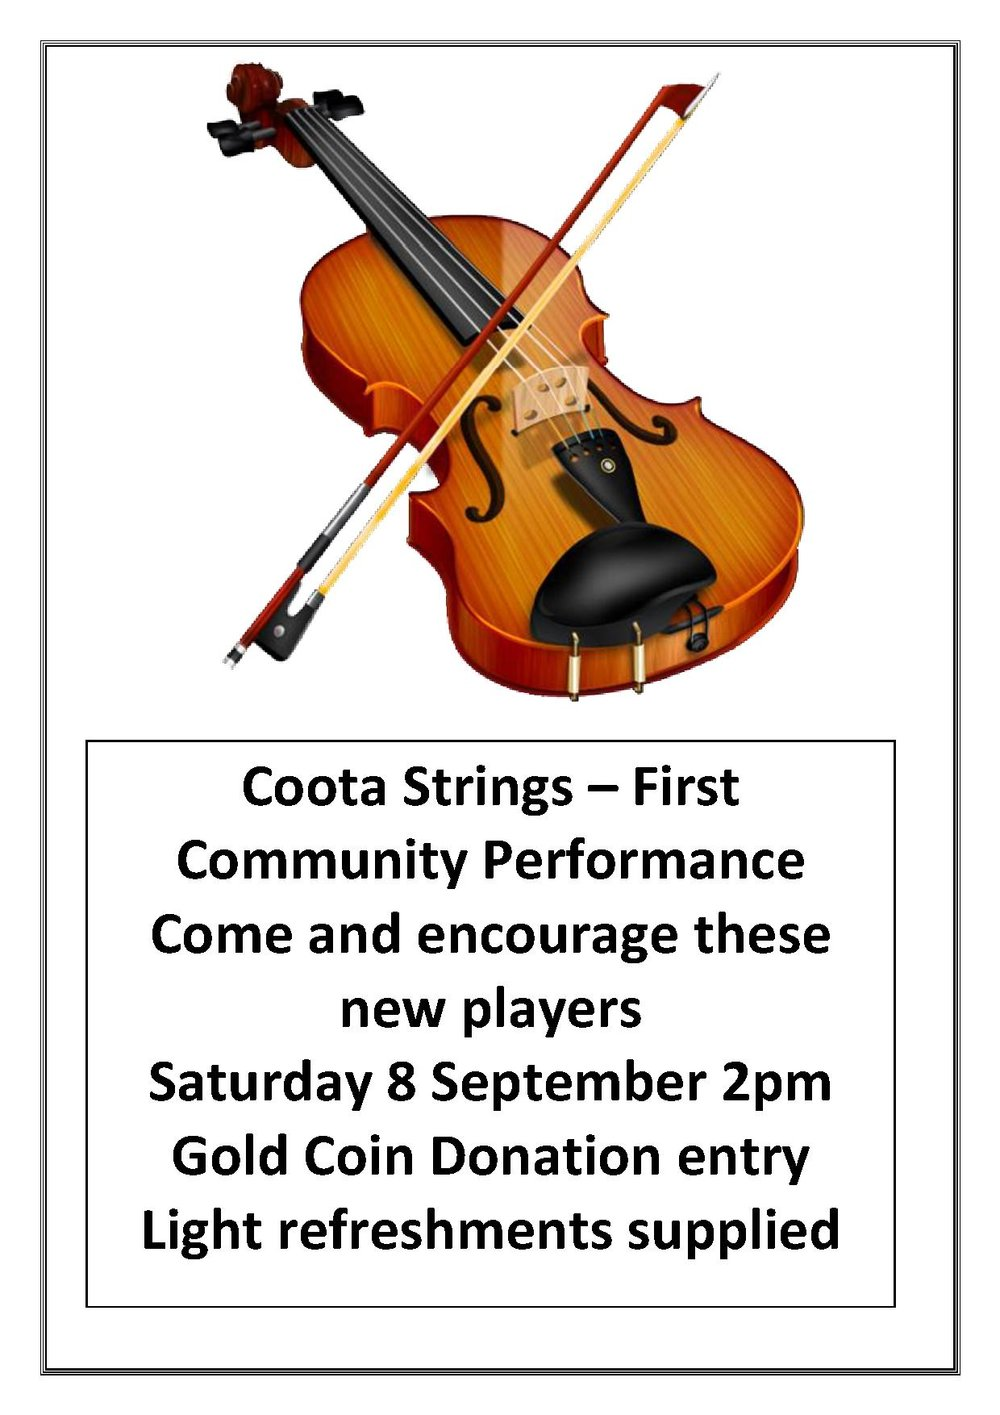 Coota Strings poster.jpg